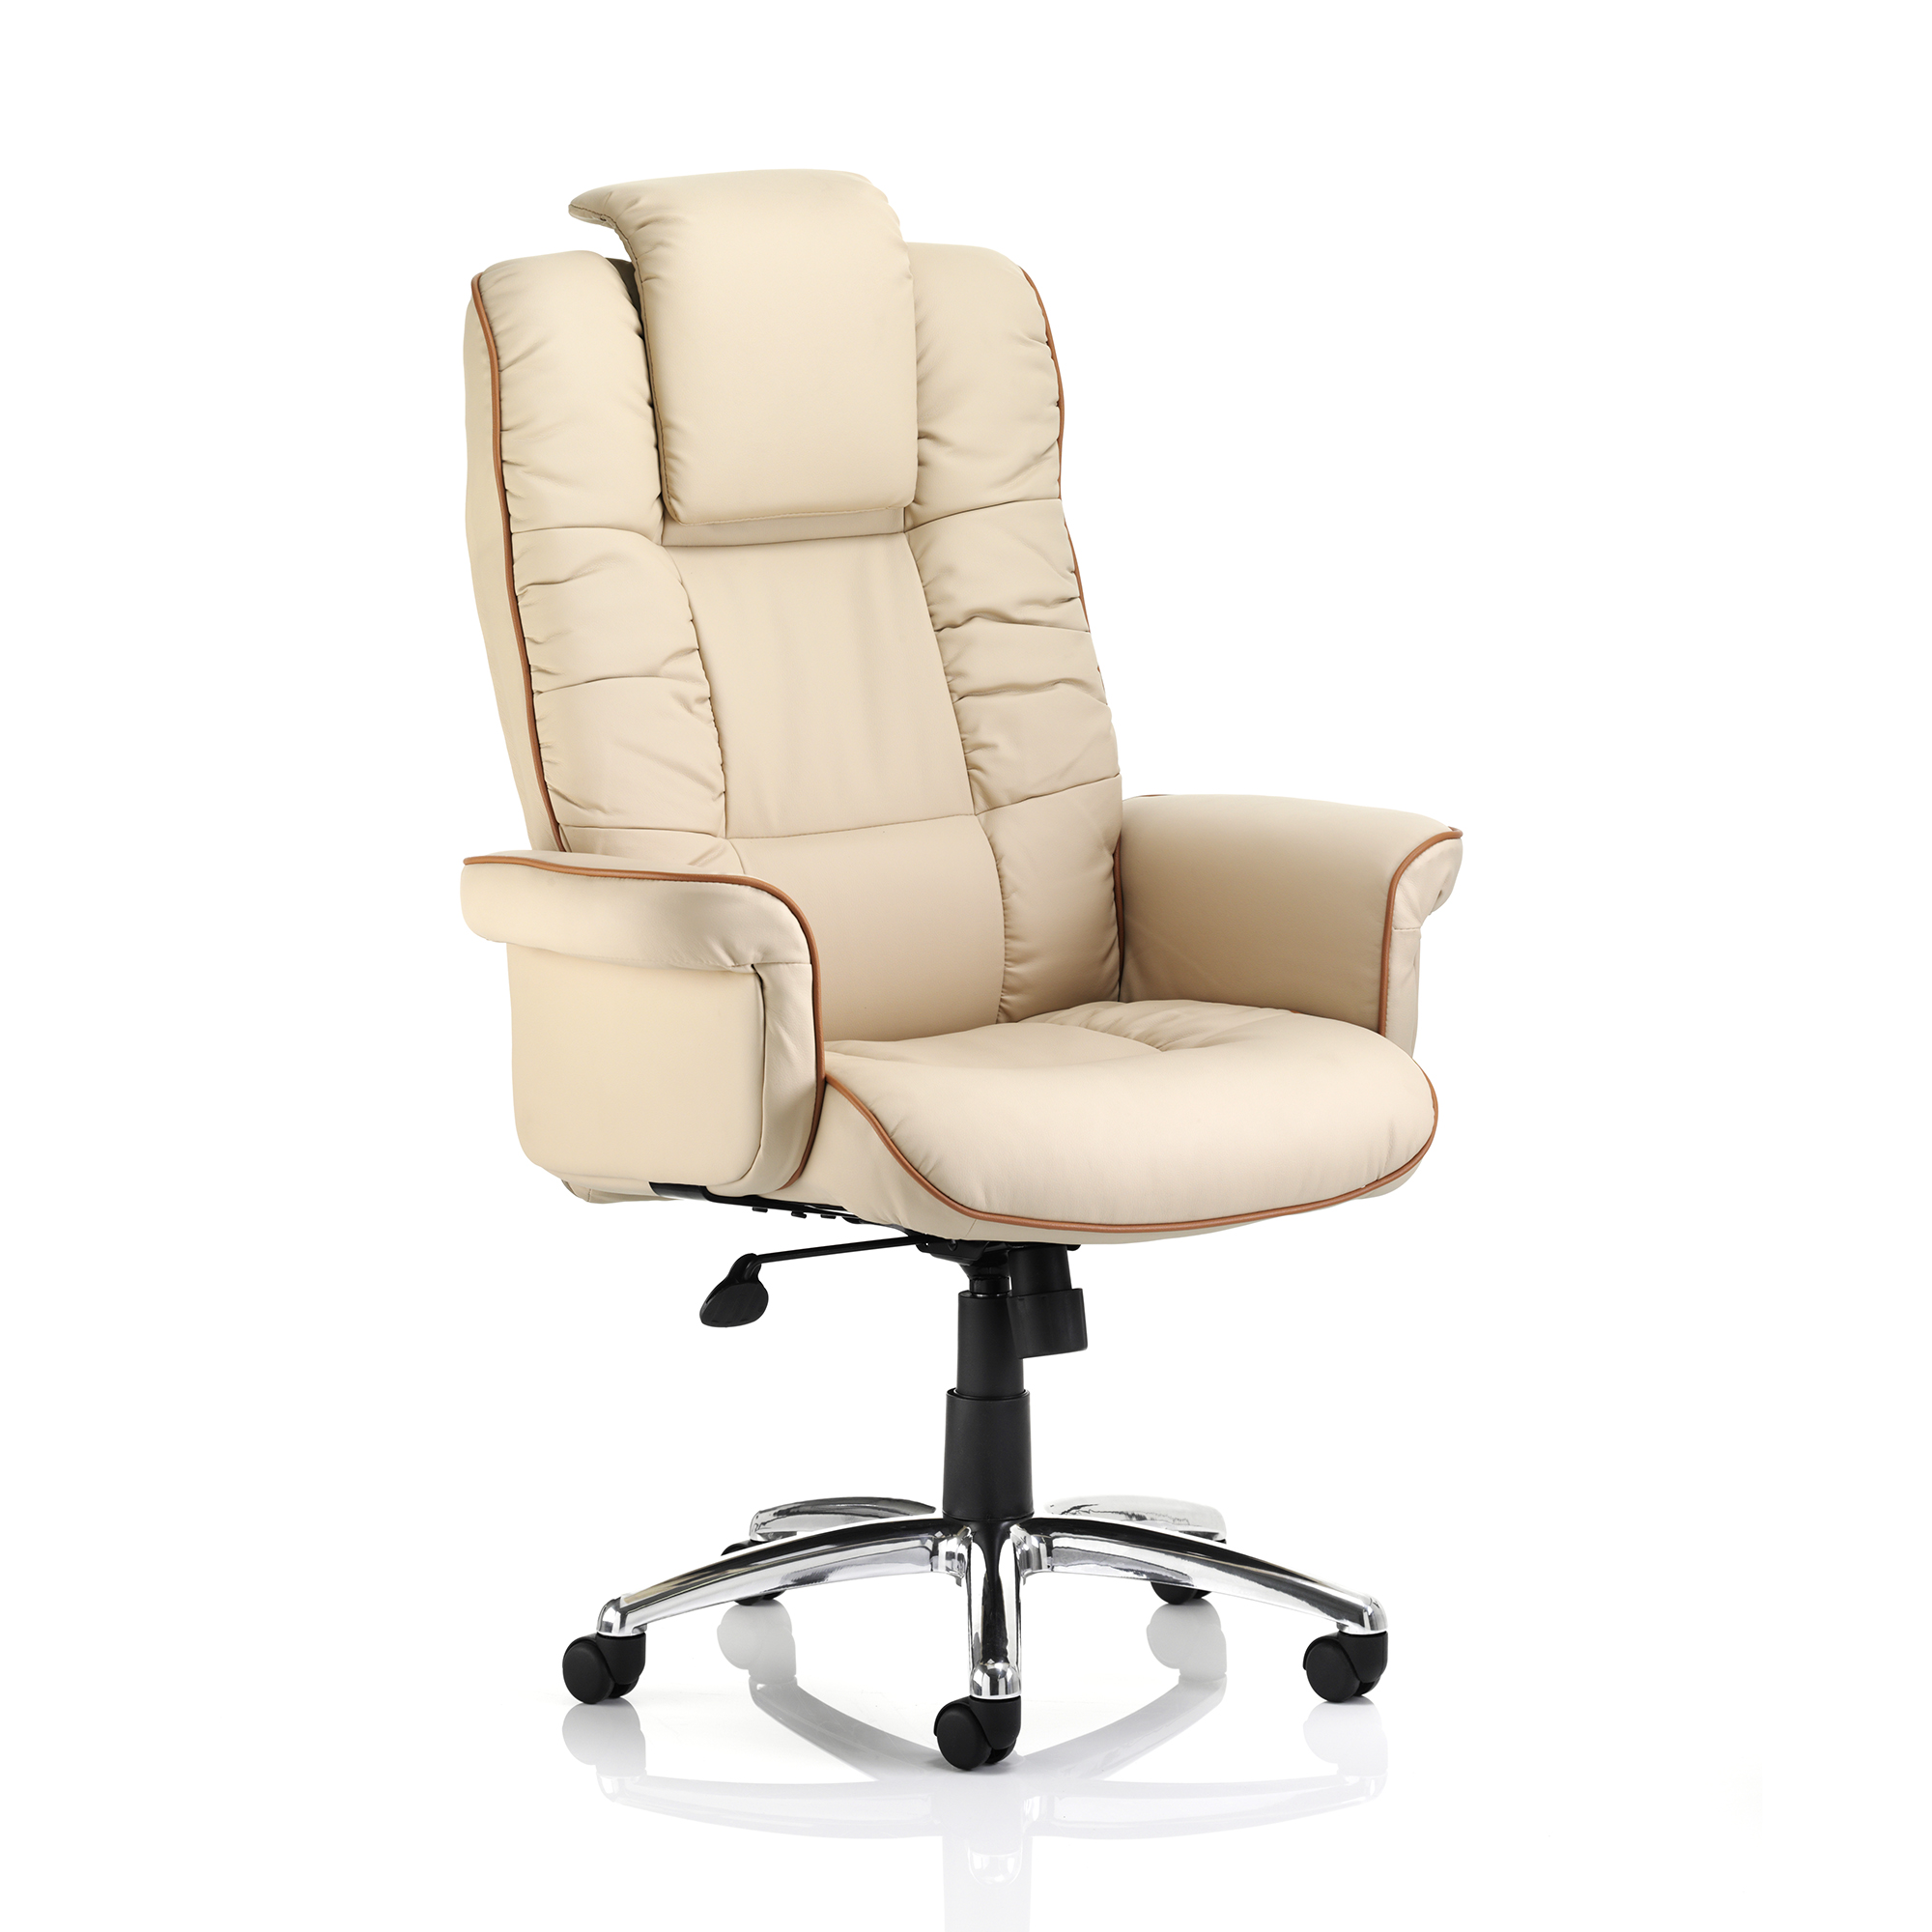 Executive seating Trexus Chelsea Executive Chair With Arms Bonded Leather Cream Ref EX000002